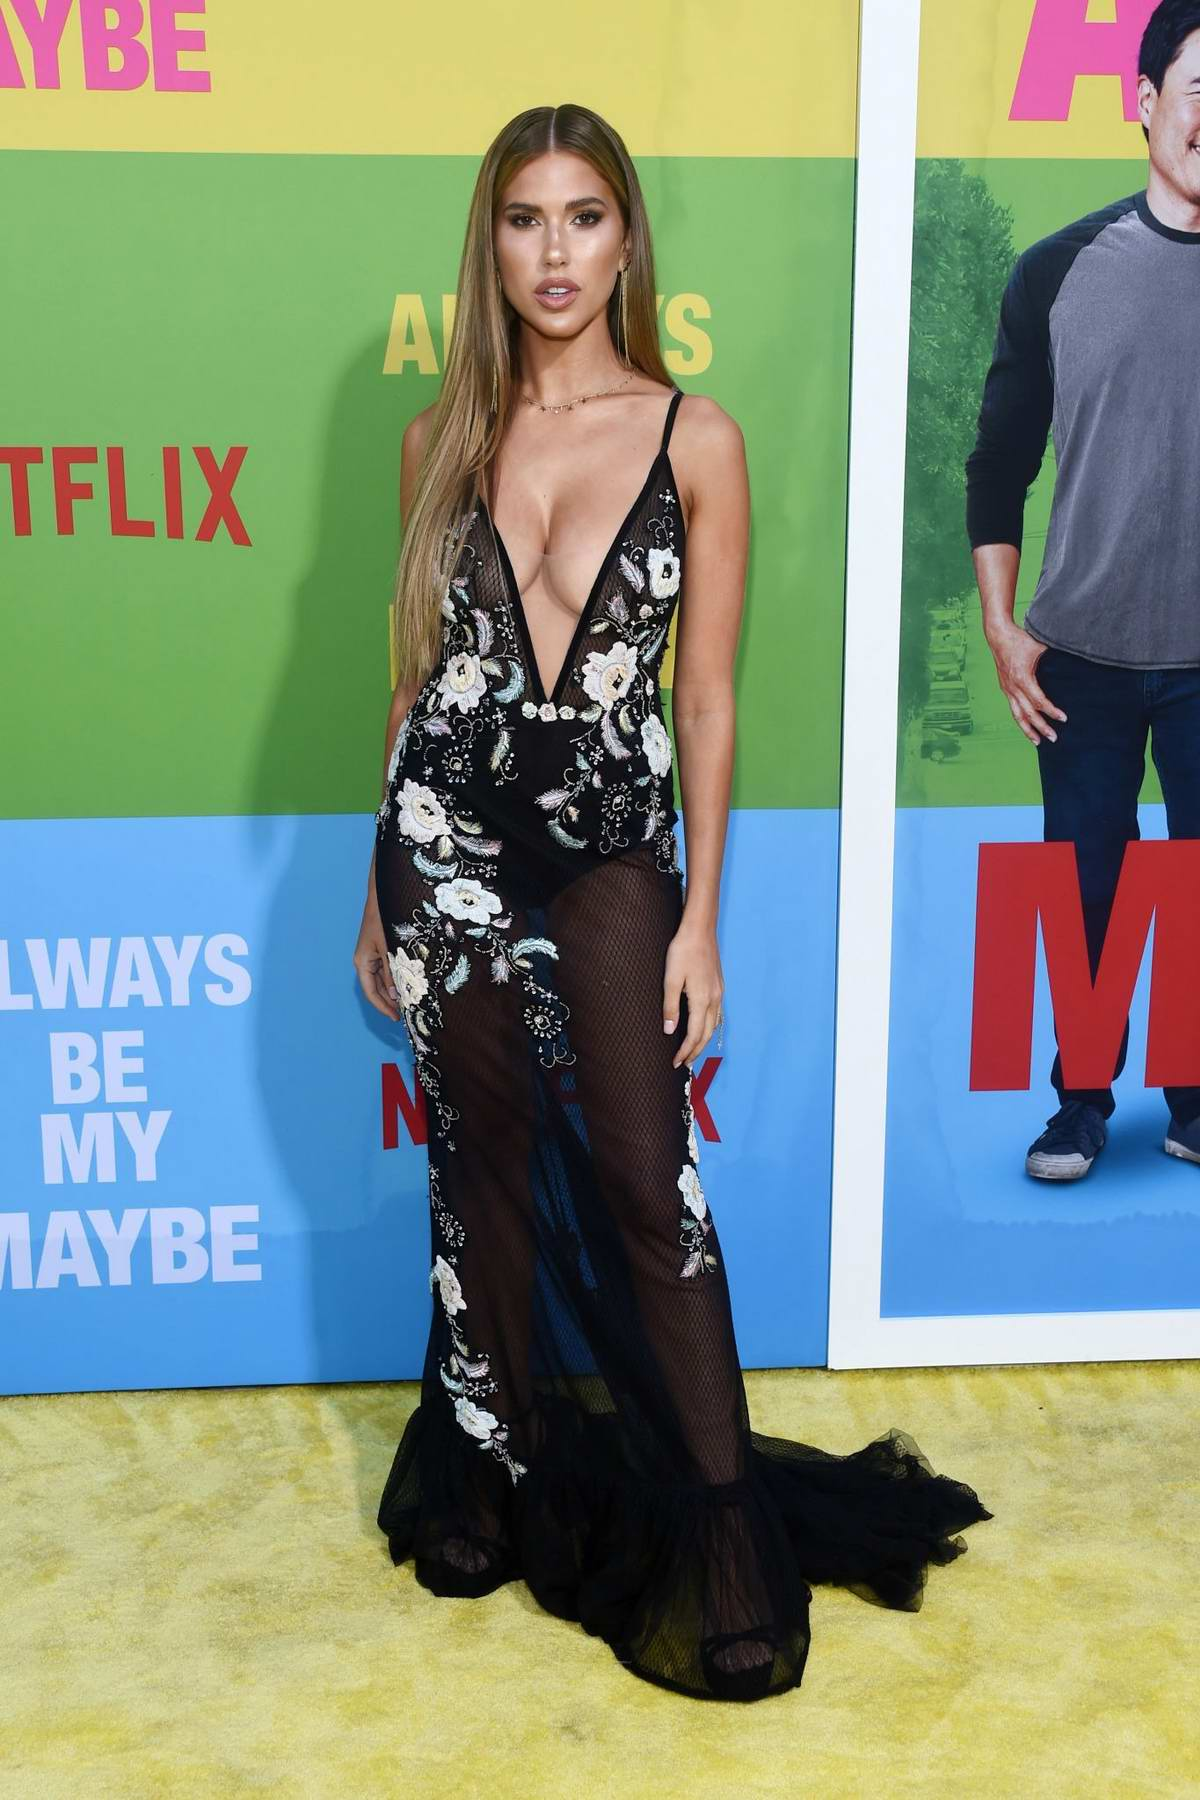 Kara Del Toro attends Netflix premiere of 'Always Be My Maybe' in Westwood, California